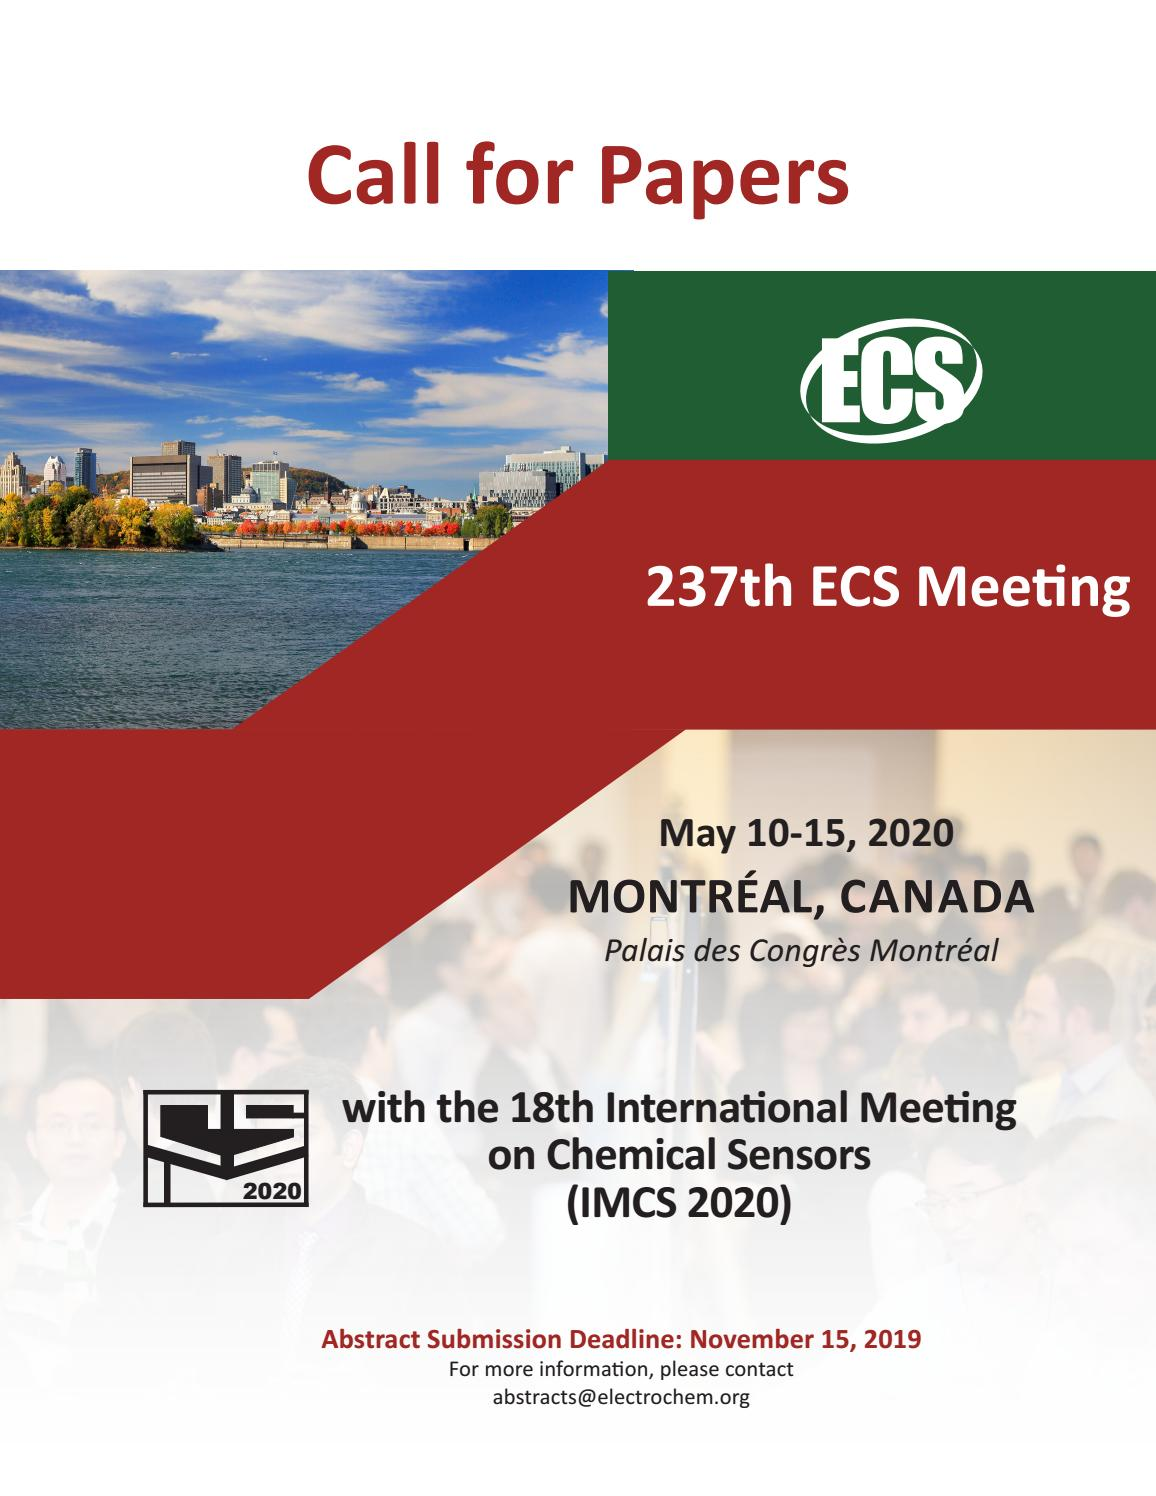 Montreal 237th ECS Meeting Call for Papers by The